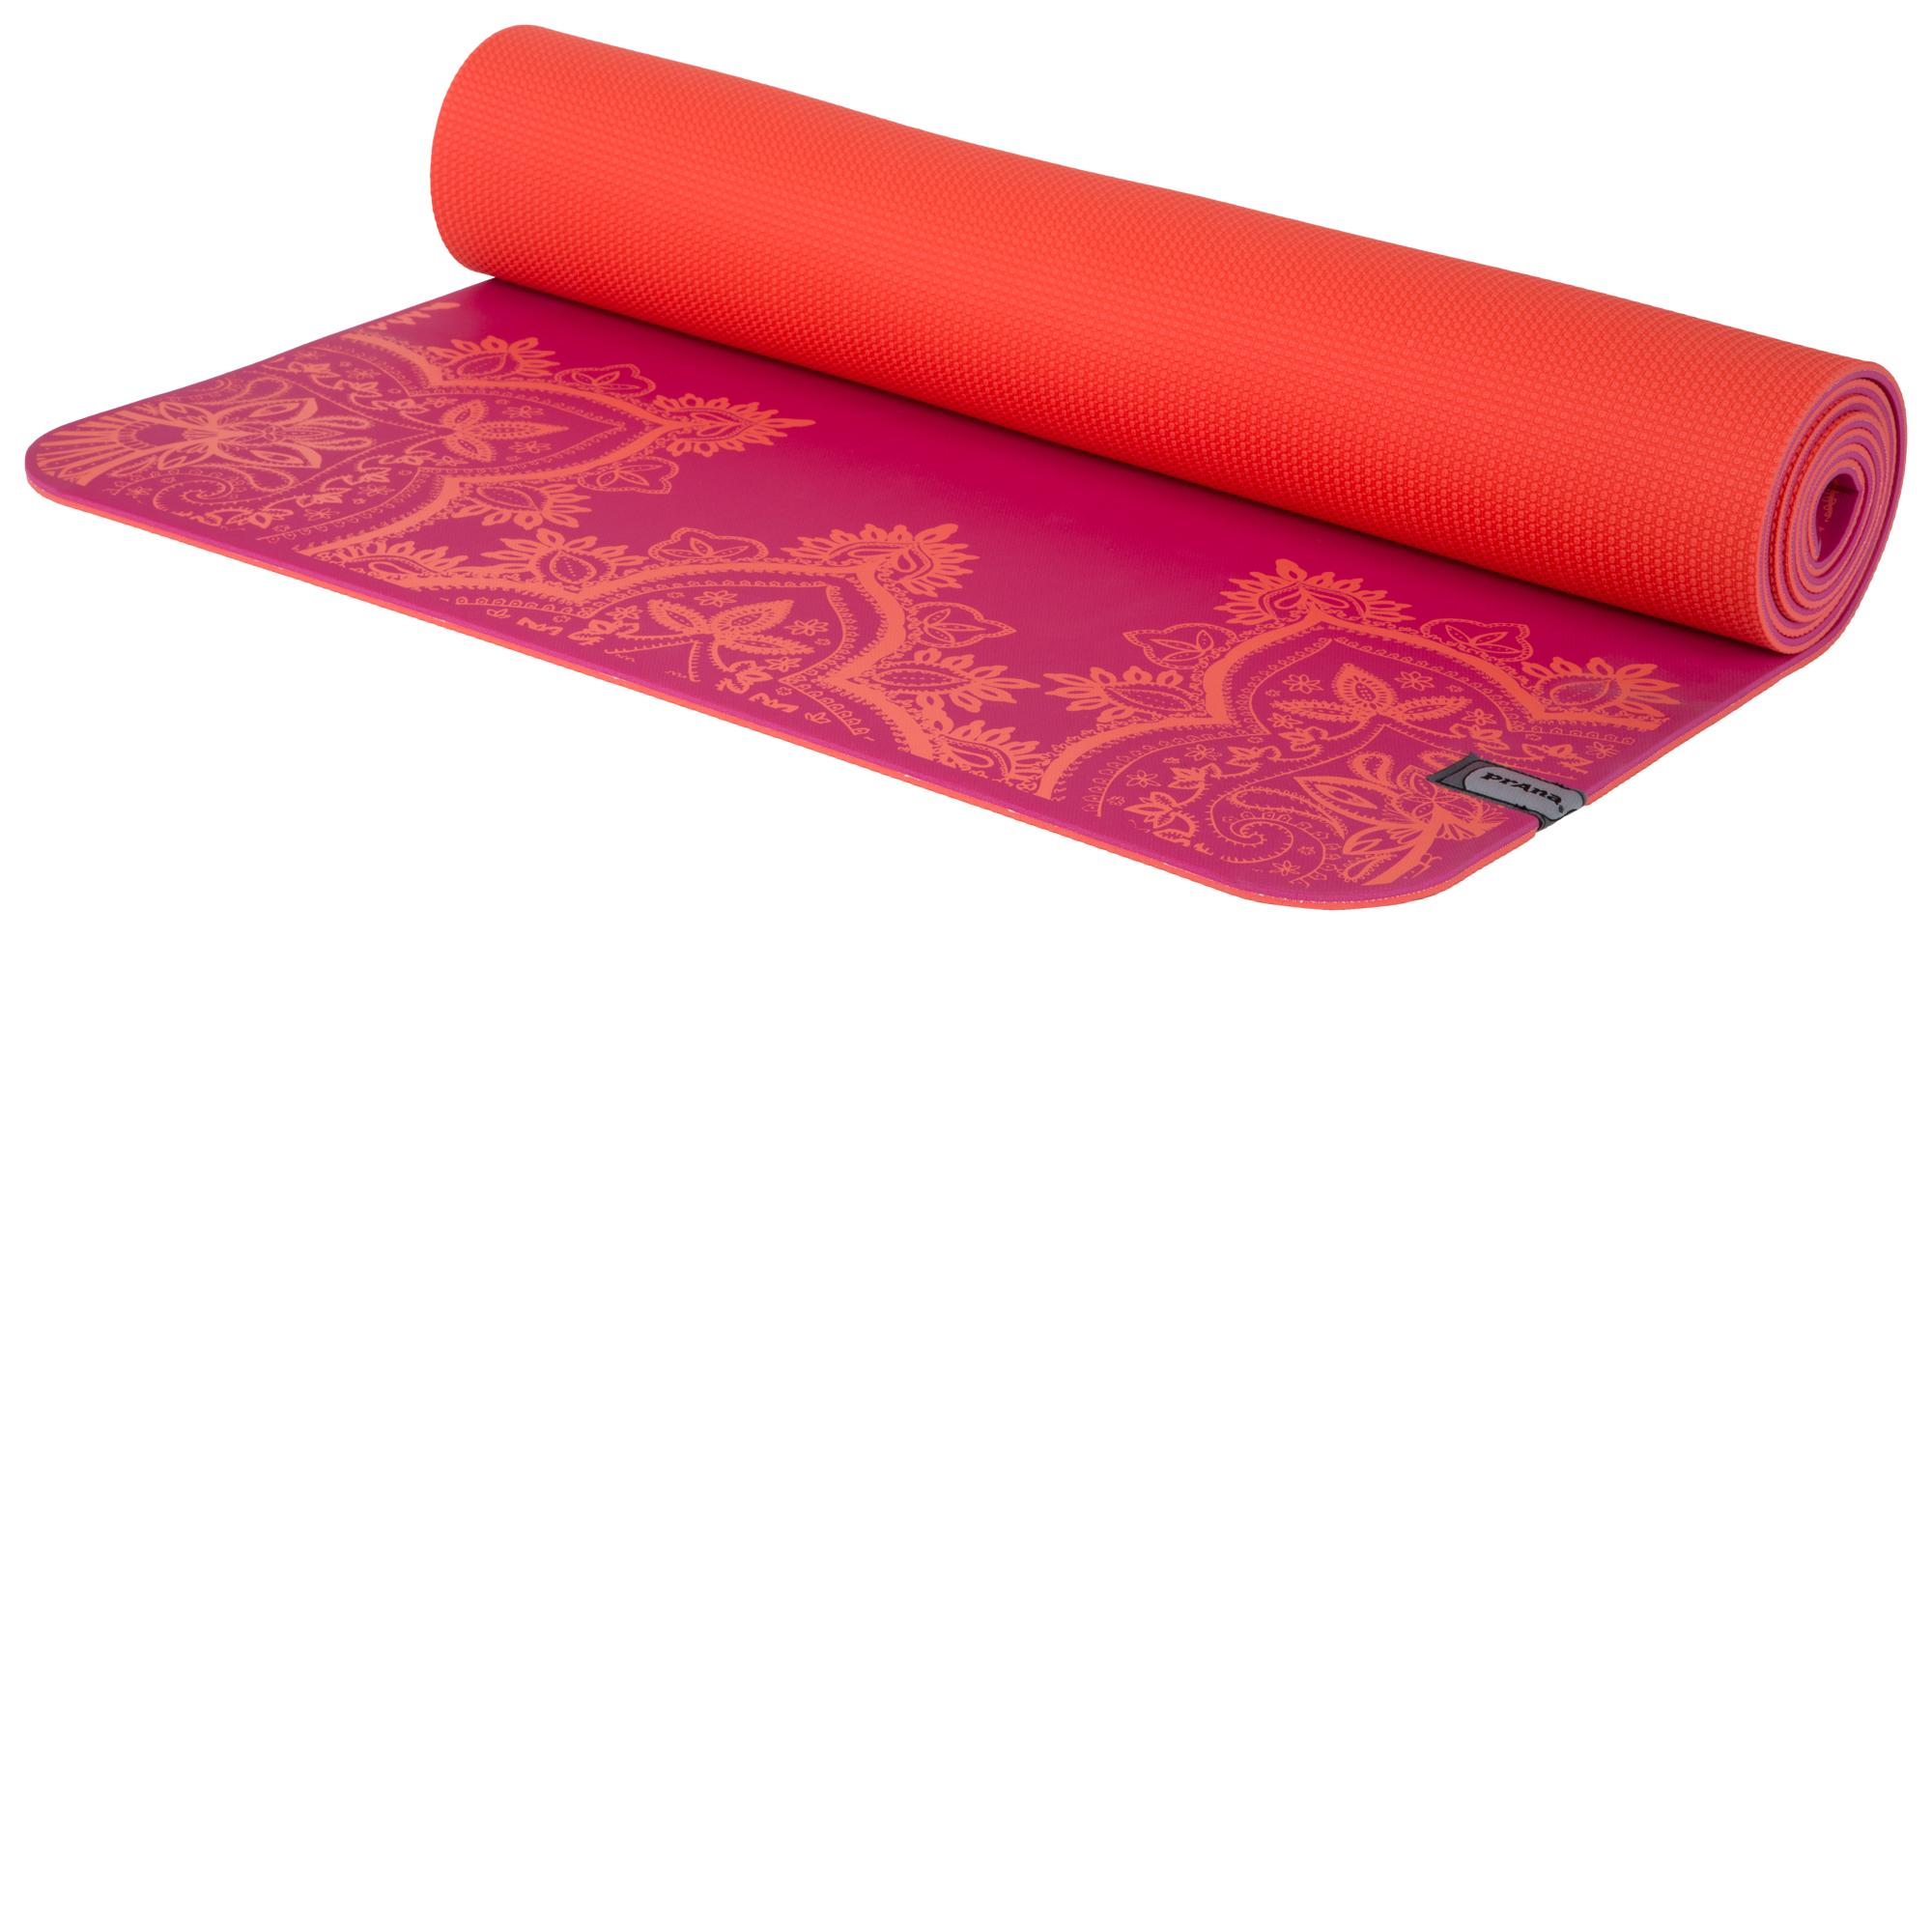 eco friendly mat getfit sophia ecofriendly hellohappy mats yoga